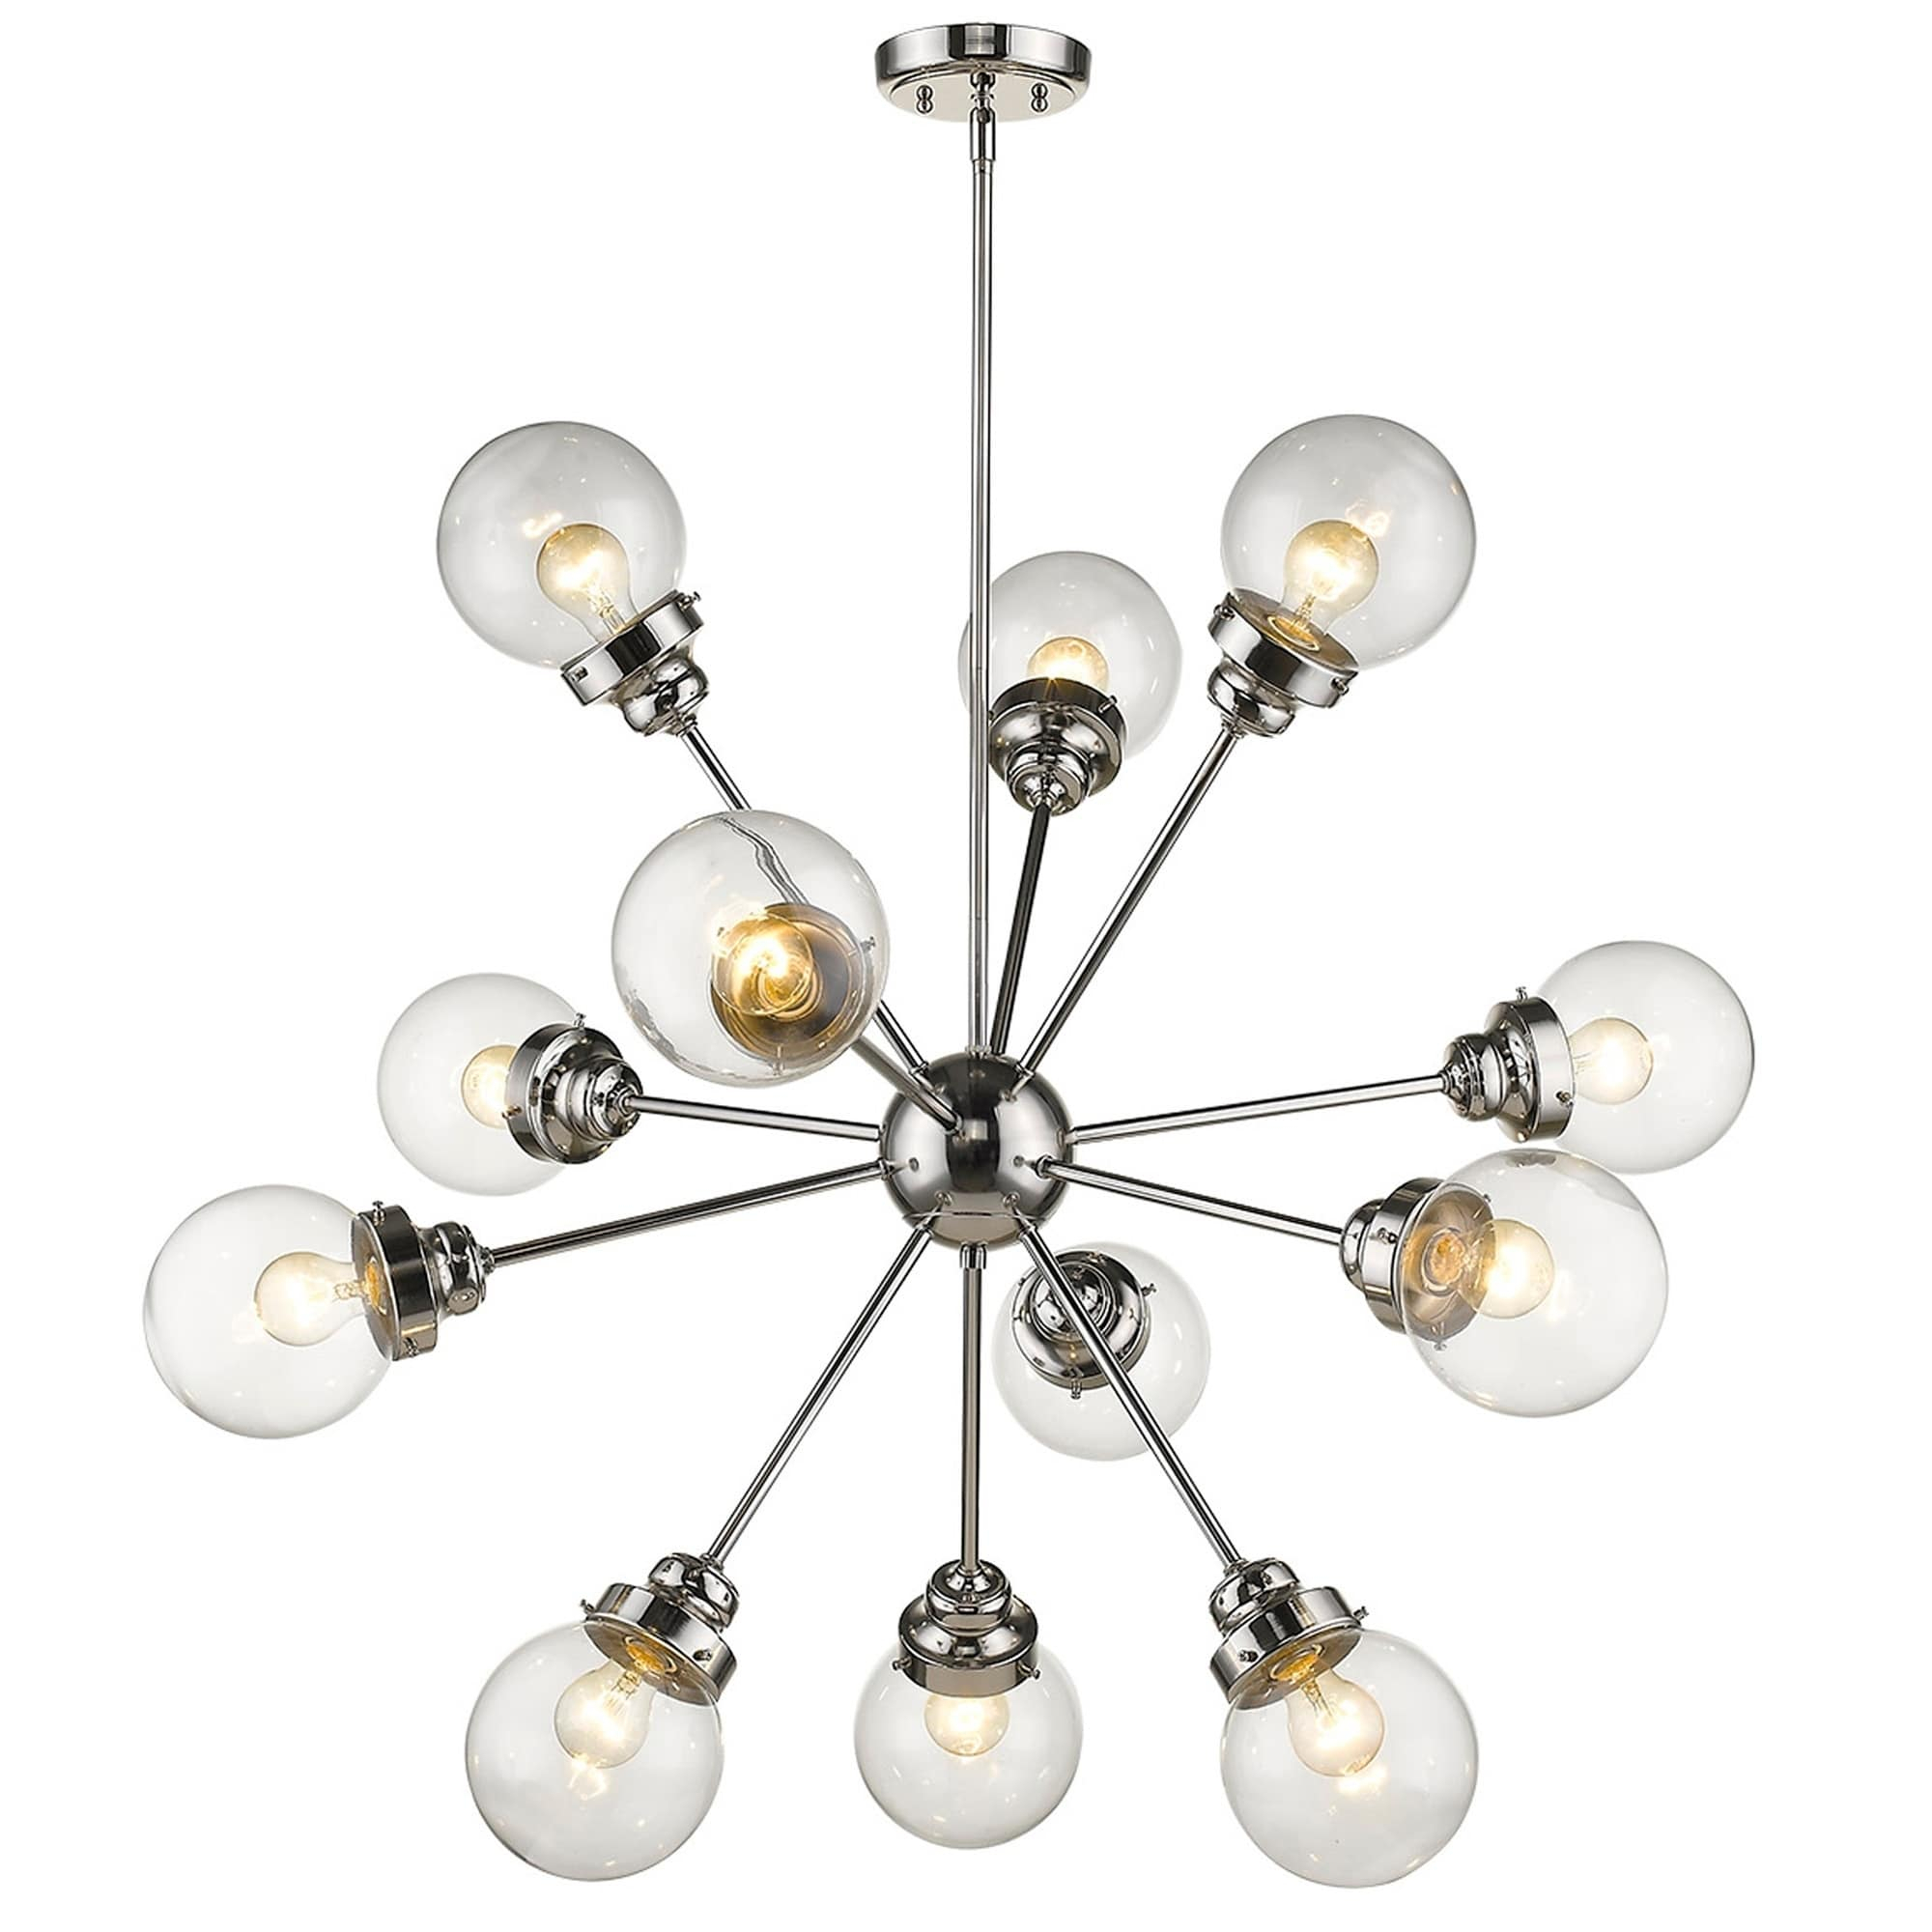 Pin On Products intended for Asher 12-Light Sputnik Chandeliers (Image 26 of 30)